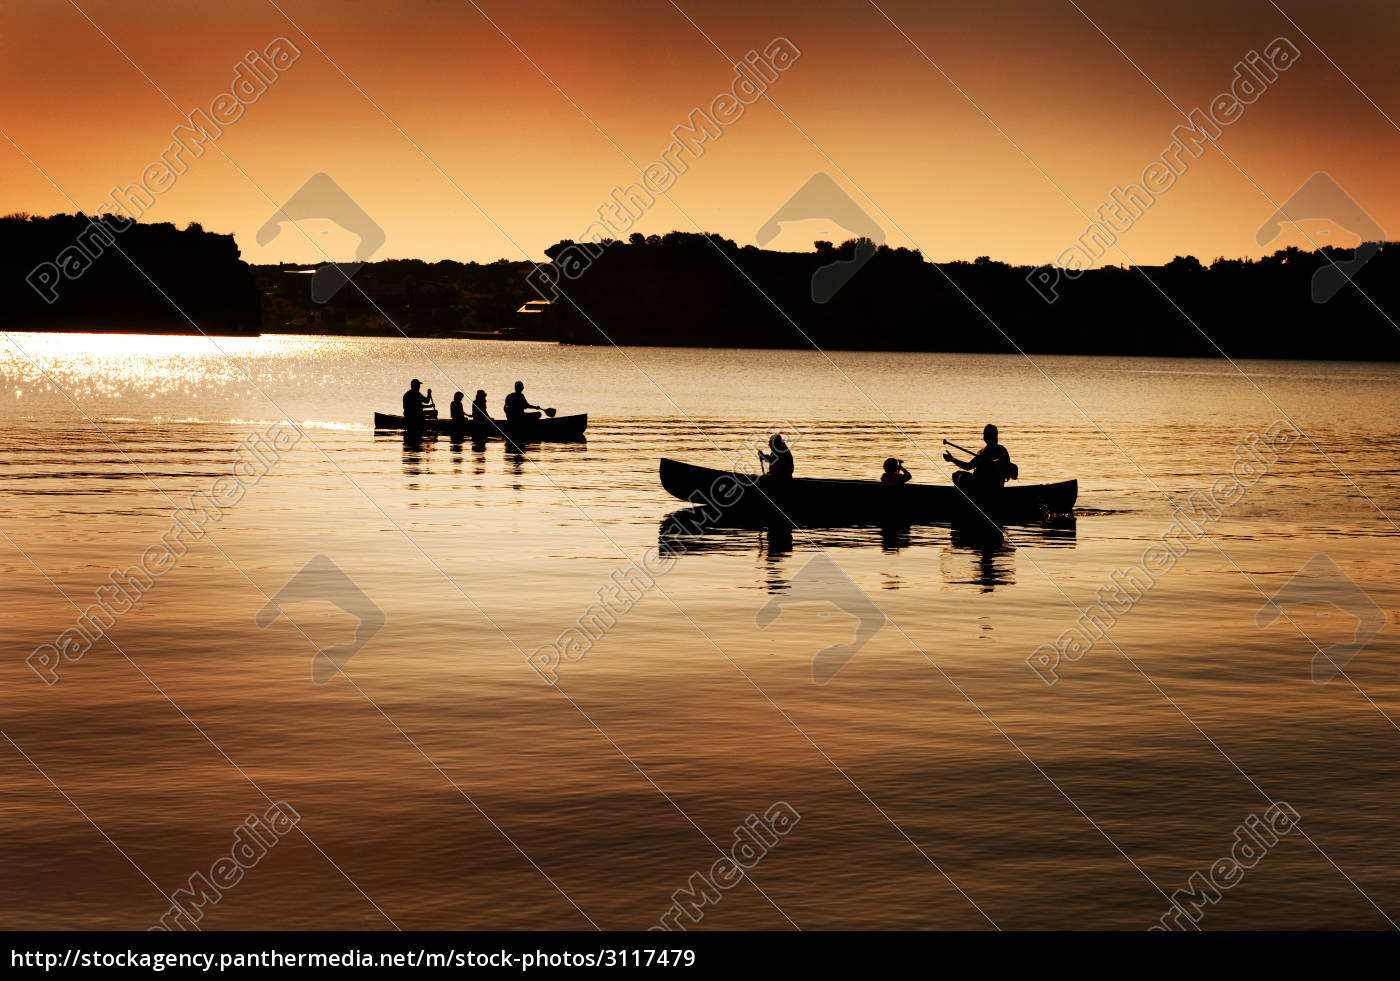 spare time, free time, leisure, leisure time, silhouette, fresh water - 3117479